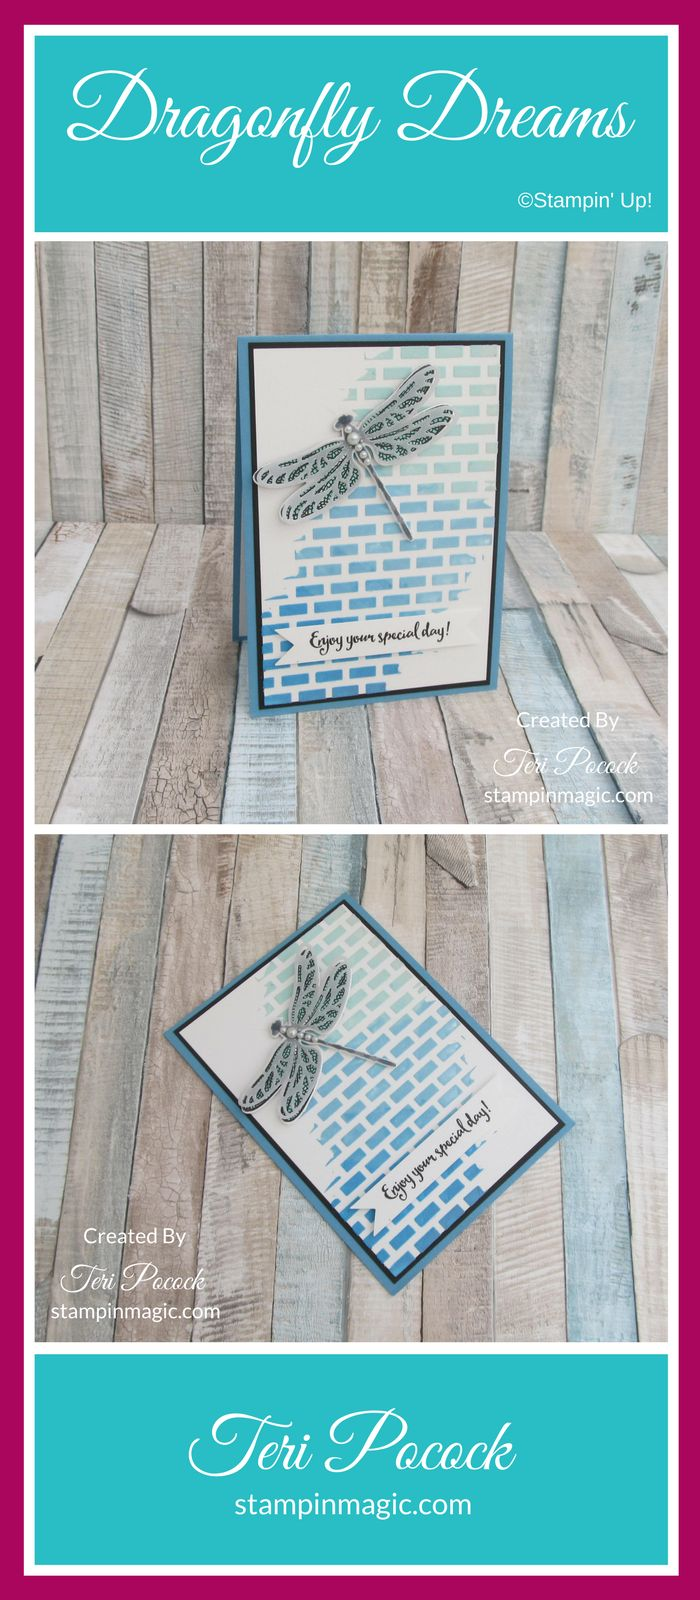 Dragonfly Dreams by Stampin Up. Created by UK Independent Demonstrator Teri Pocock. Click through for more details.#teripocock #stampinup #stampinupuk #dragonflydreams #embossingpaste